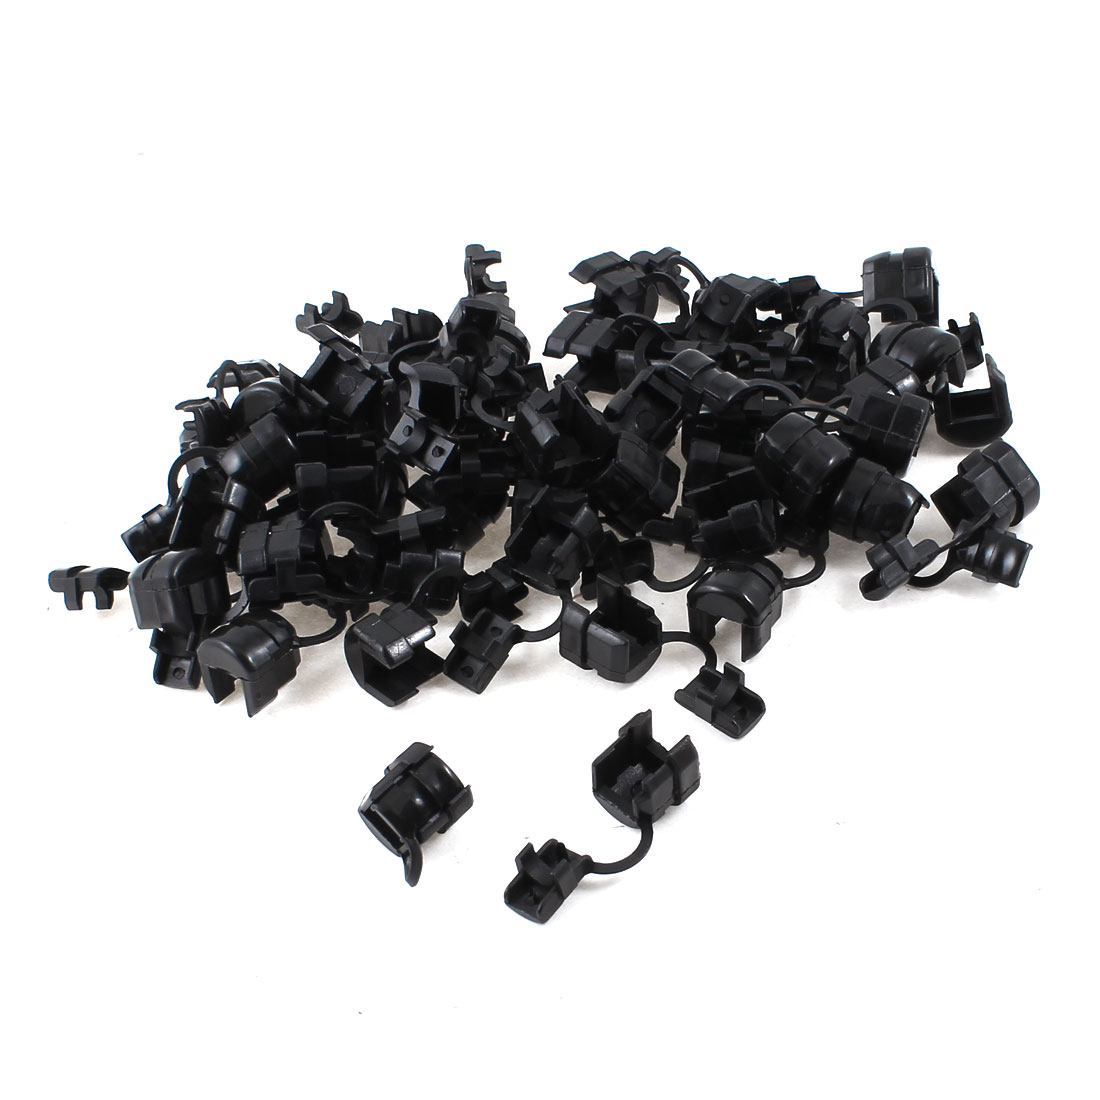 50 Pcs Black Nylon Wires Protectors Strain Relief Bushing for 6mm Round Cables